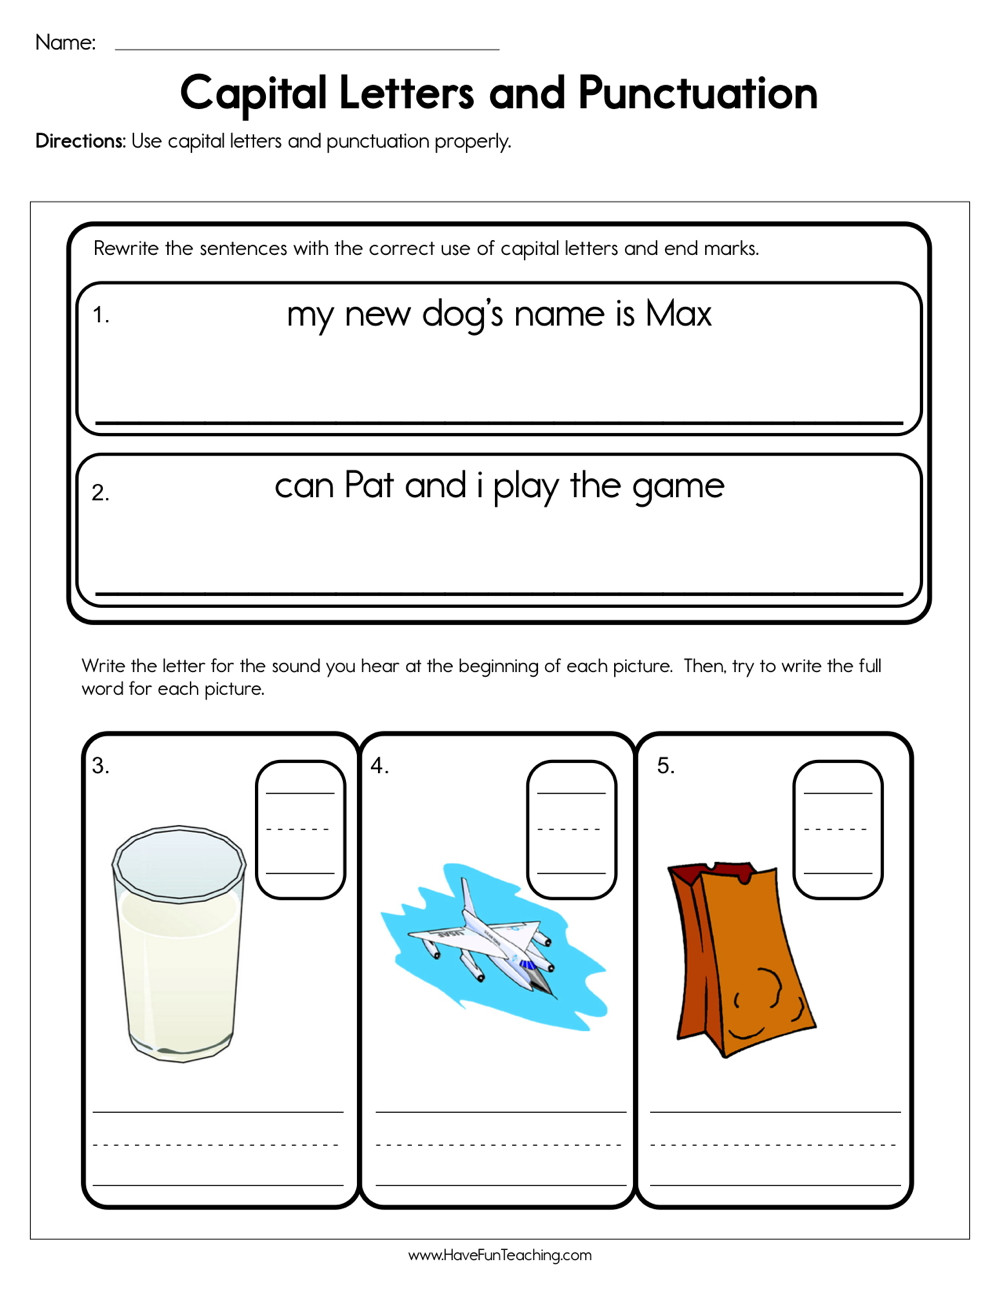 Commas Worksheet 3rd Grade Capital Letters and Punctuation Worksheet